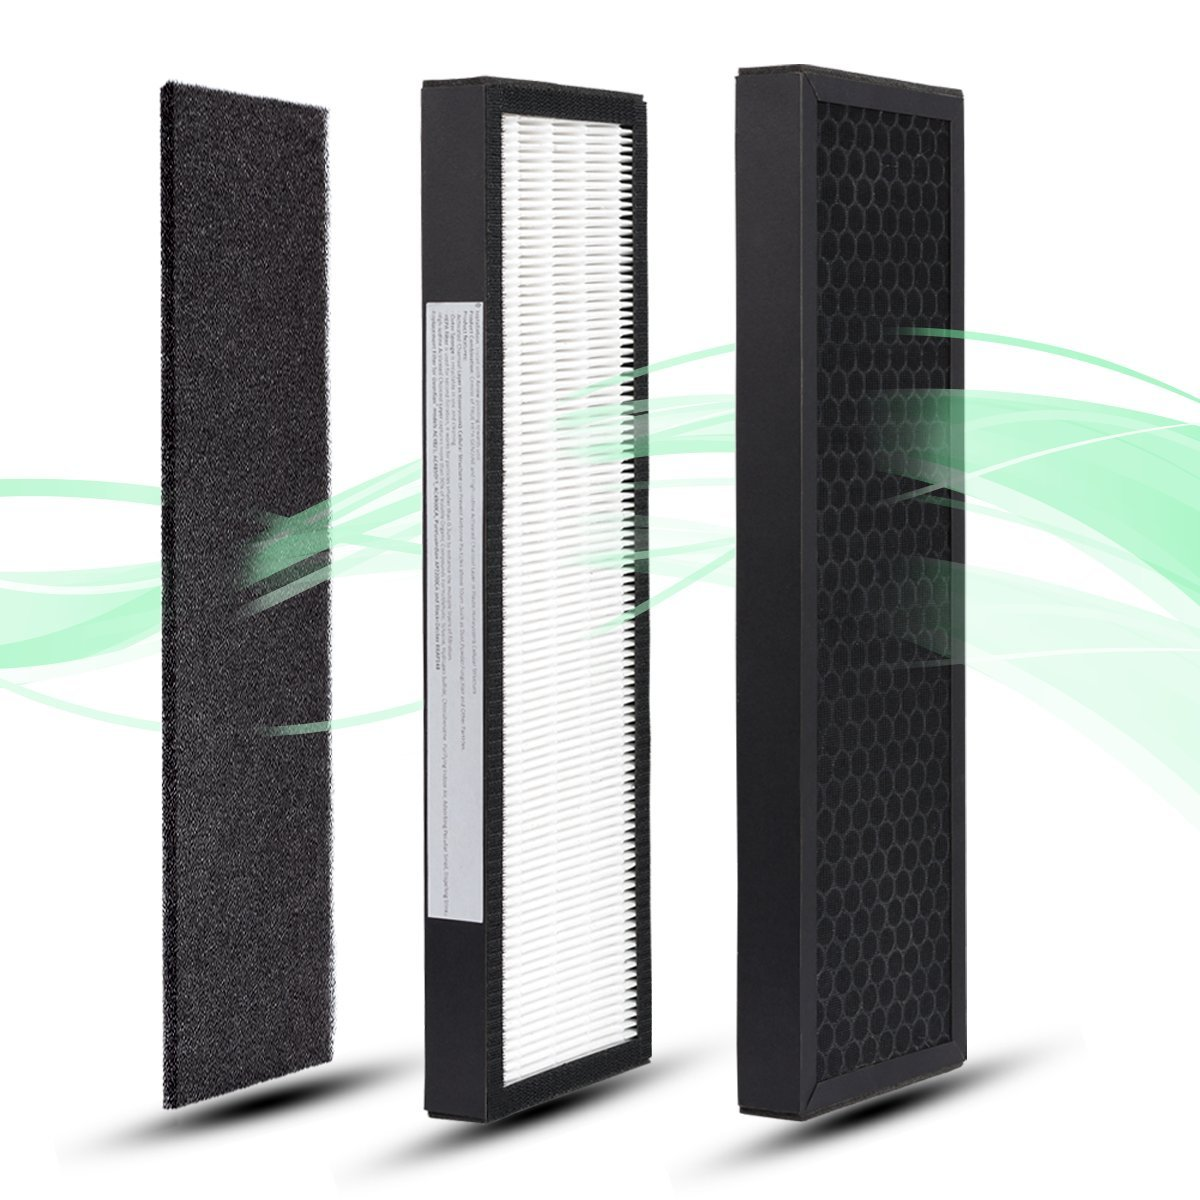 BONTIME True HEPA Air Replacement Filter - Inovative Honeycomb High-iodine Activated Charcoal Layer Hepa Filter B for GermGuardian AC4300/AC4800/4900 Series Air Purifiers